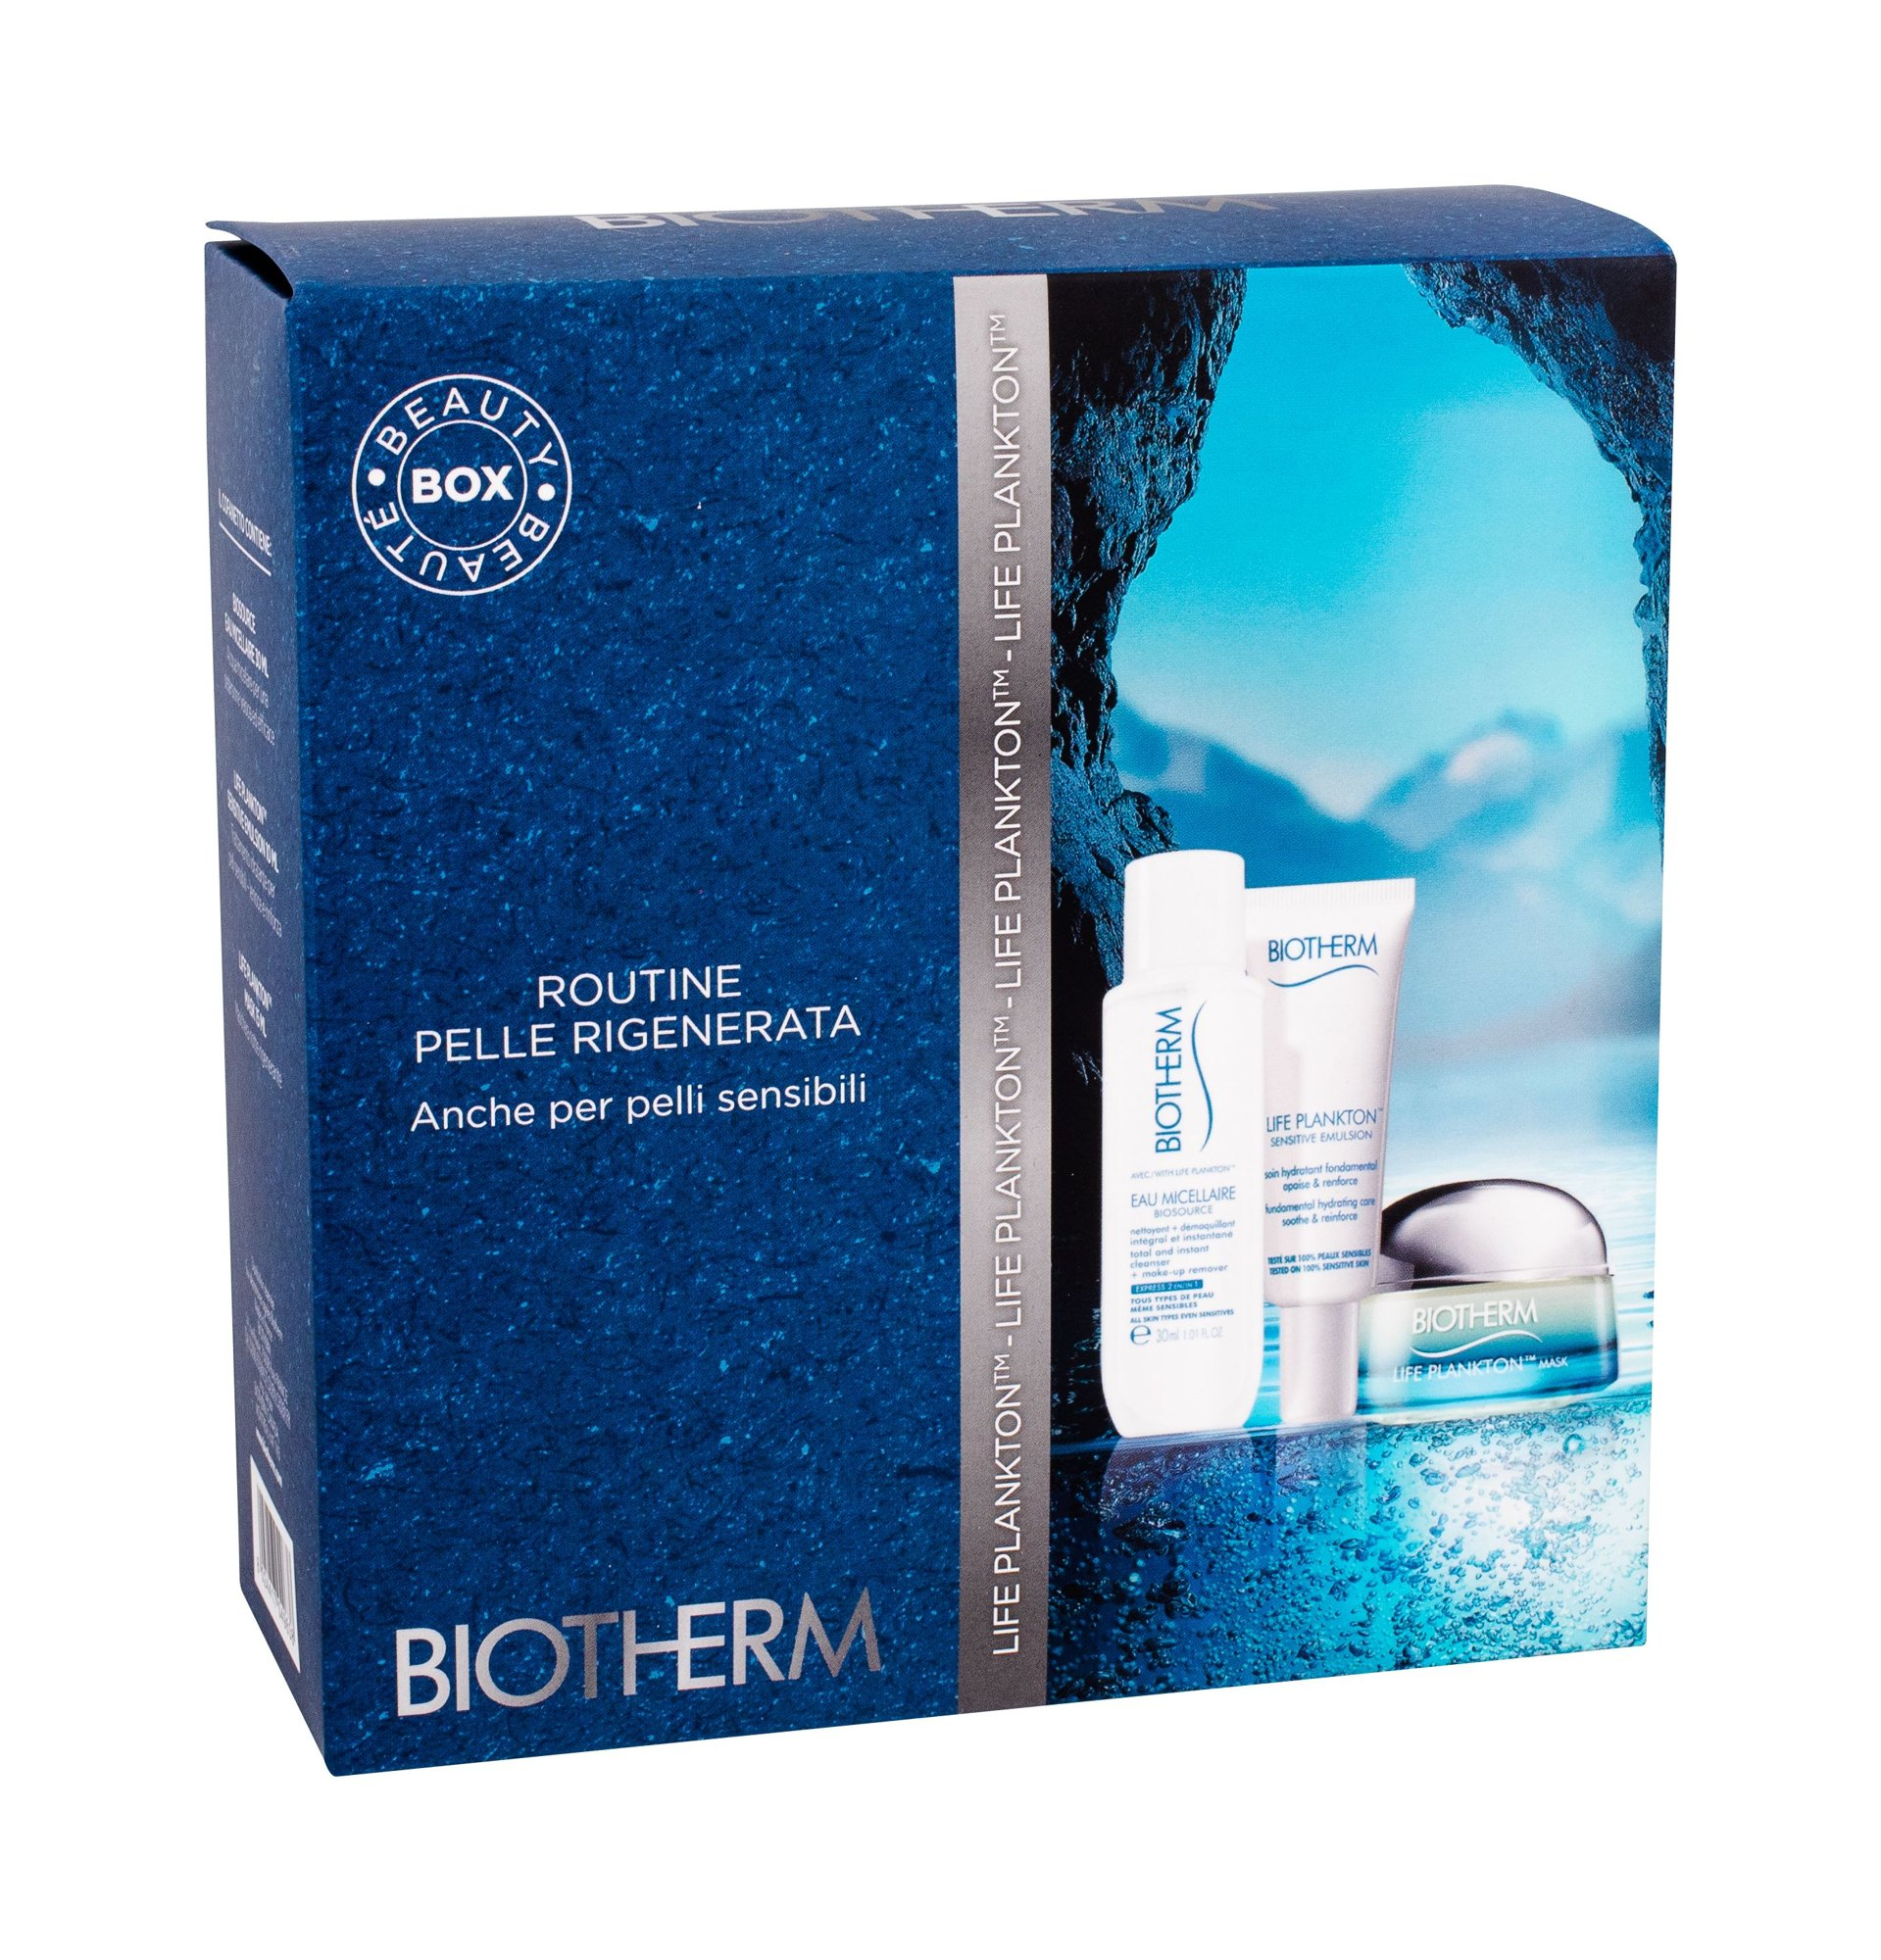 Biotherm Life Plankton Face Mask 15ml